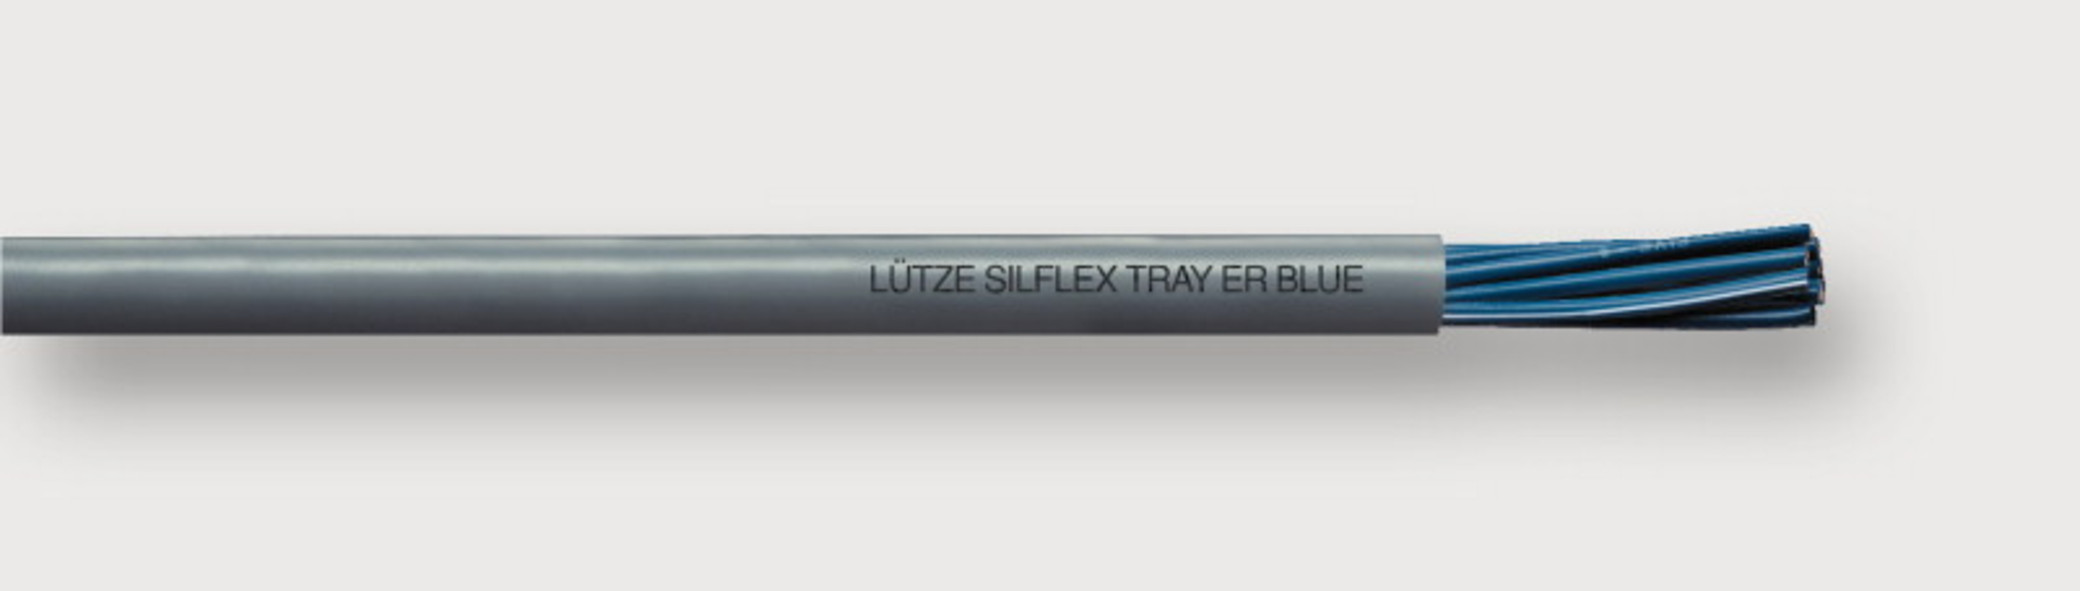 A3251205 - LÜTZE SILFLEX® Tray-ER Blue PVC with UL/TC-ER/CE Approvals, Blue Conductors for 24 V Applications